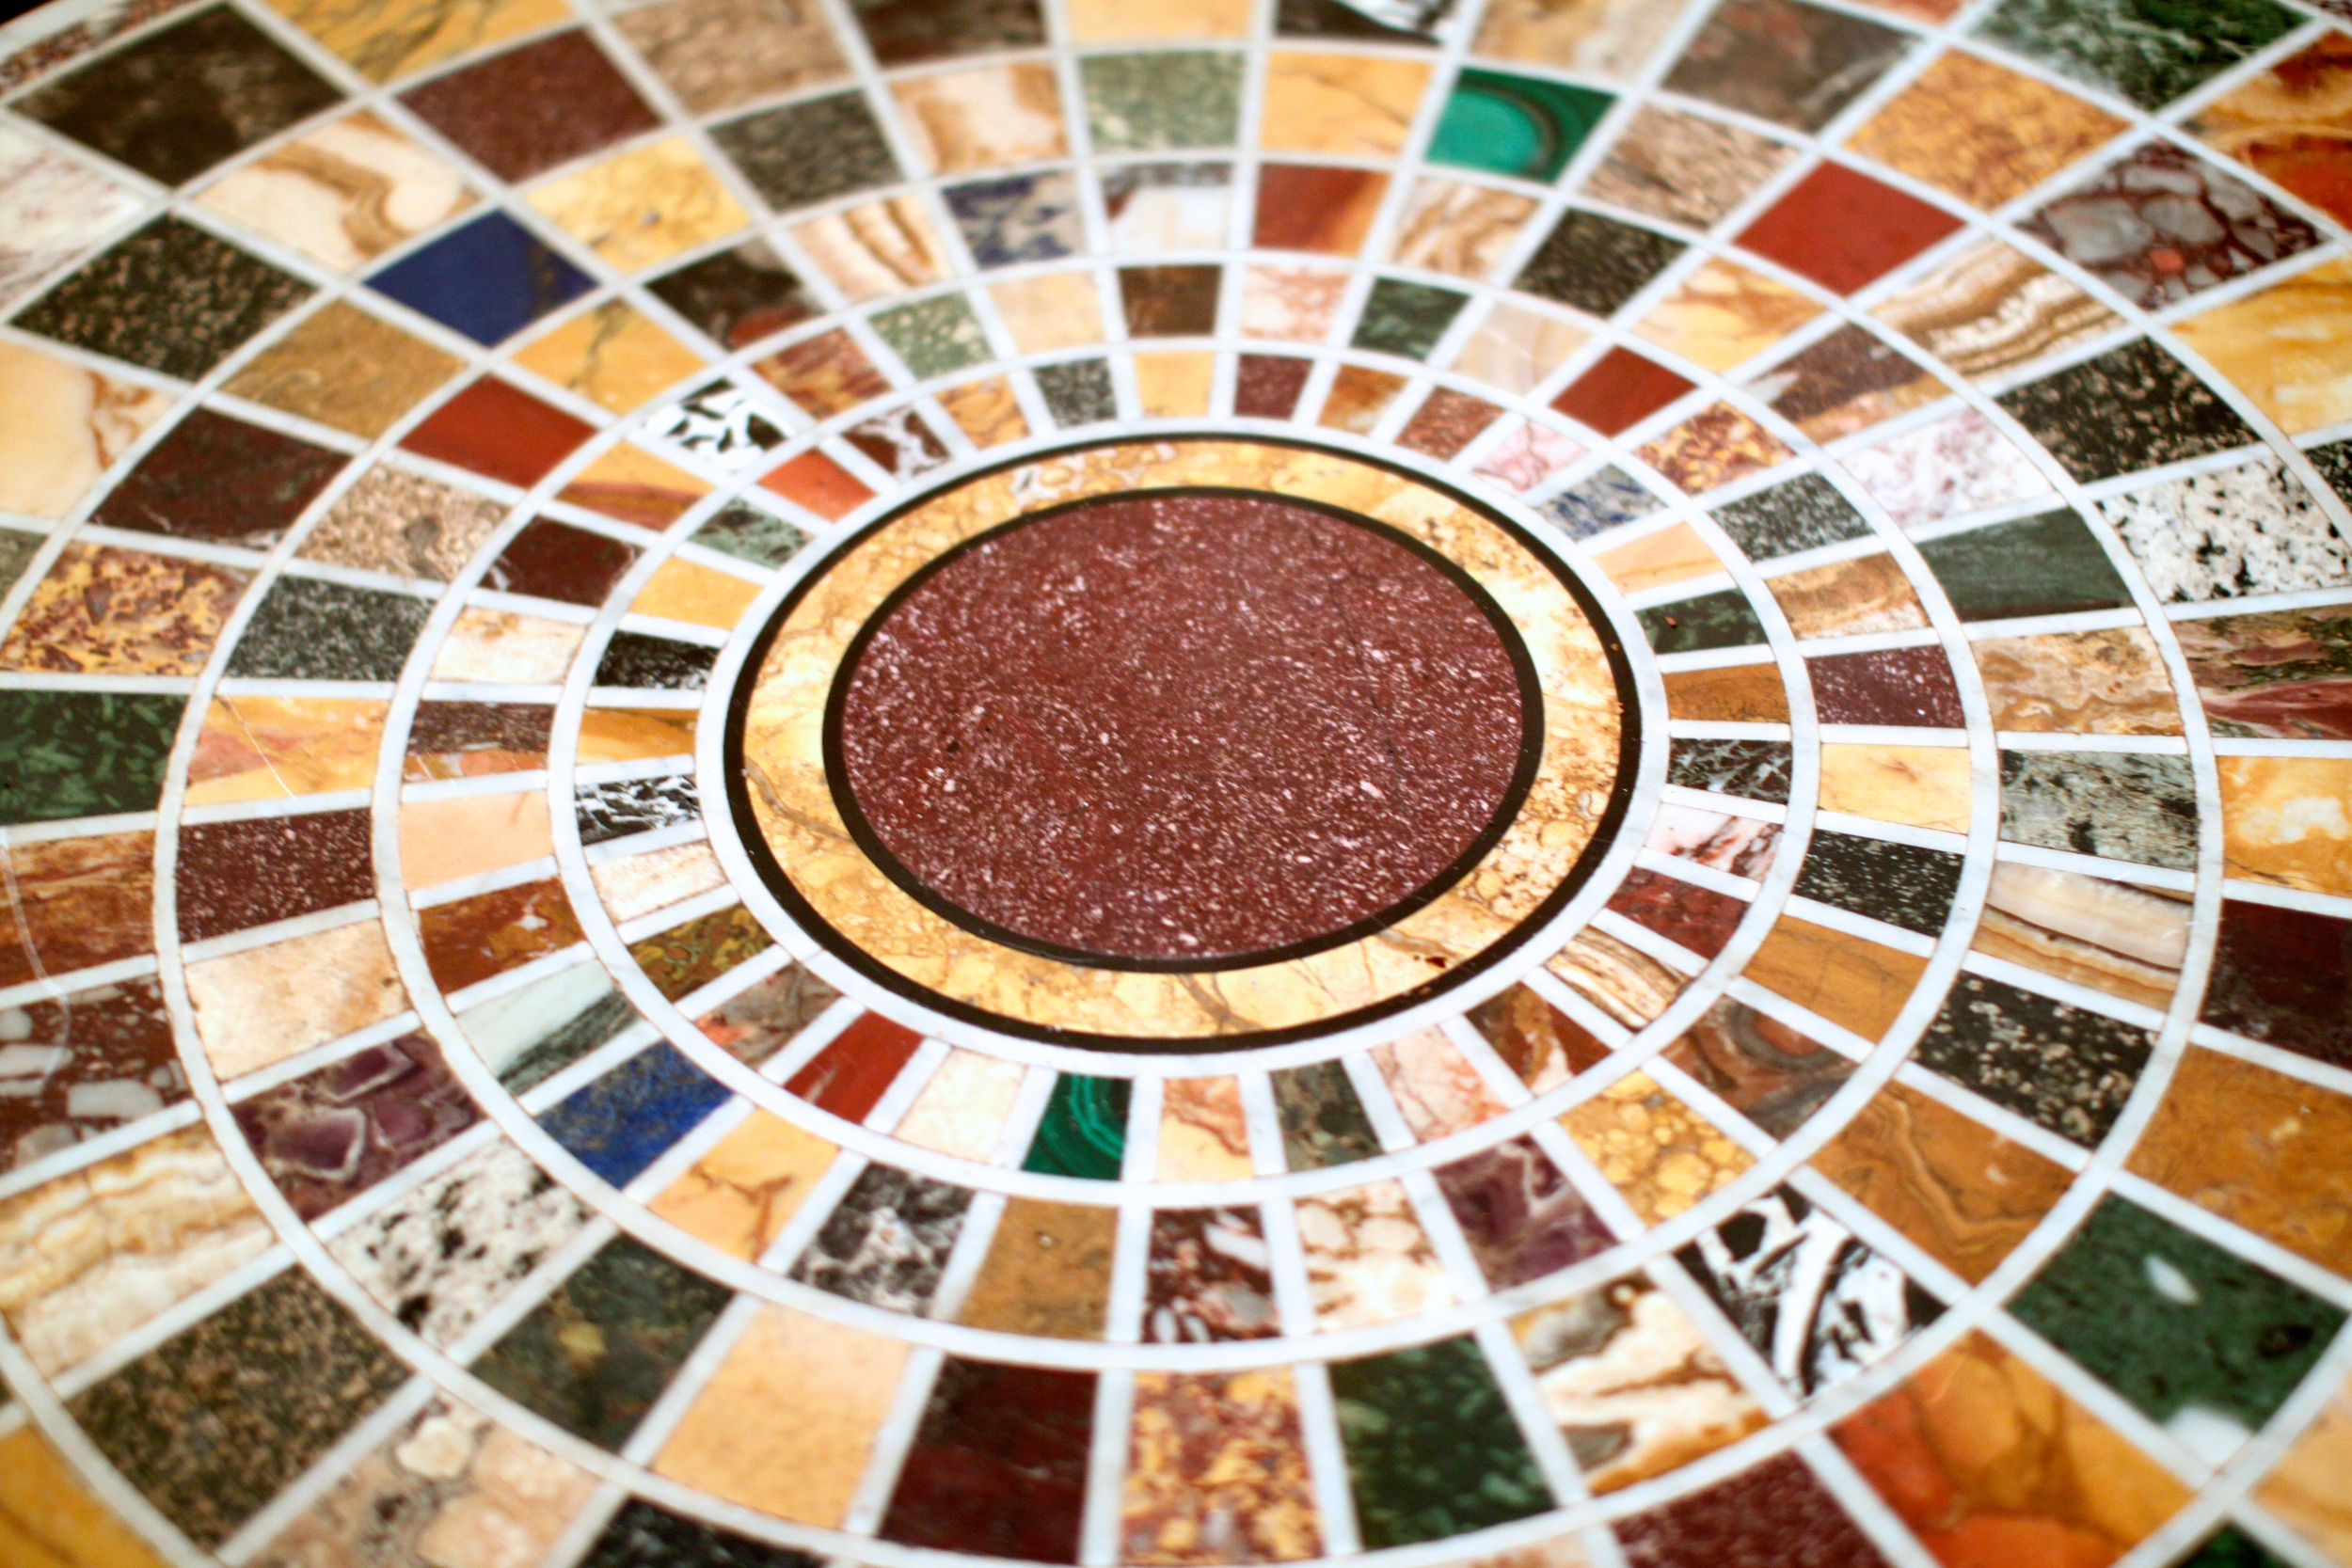 Custom intarsia table with variety of ancient marble and stone